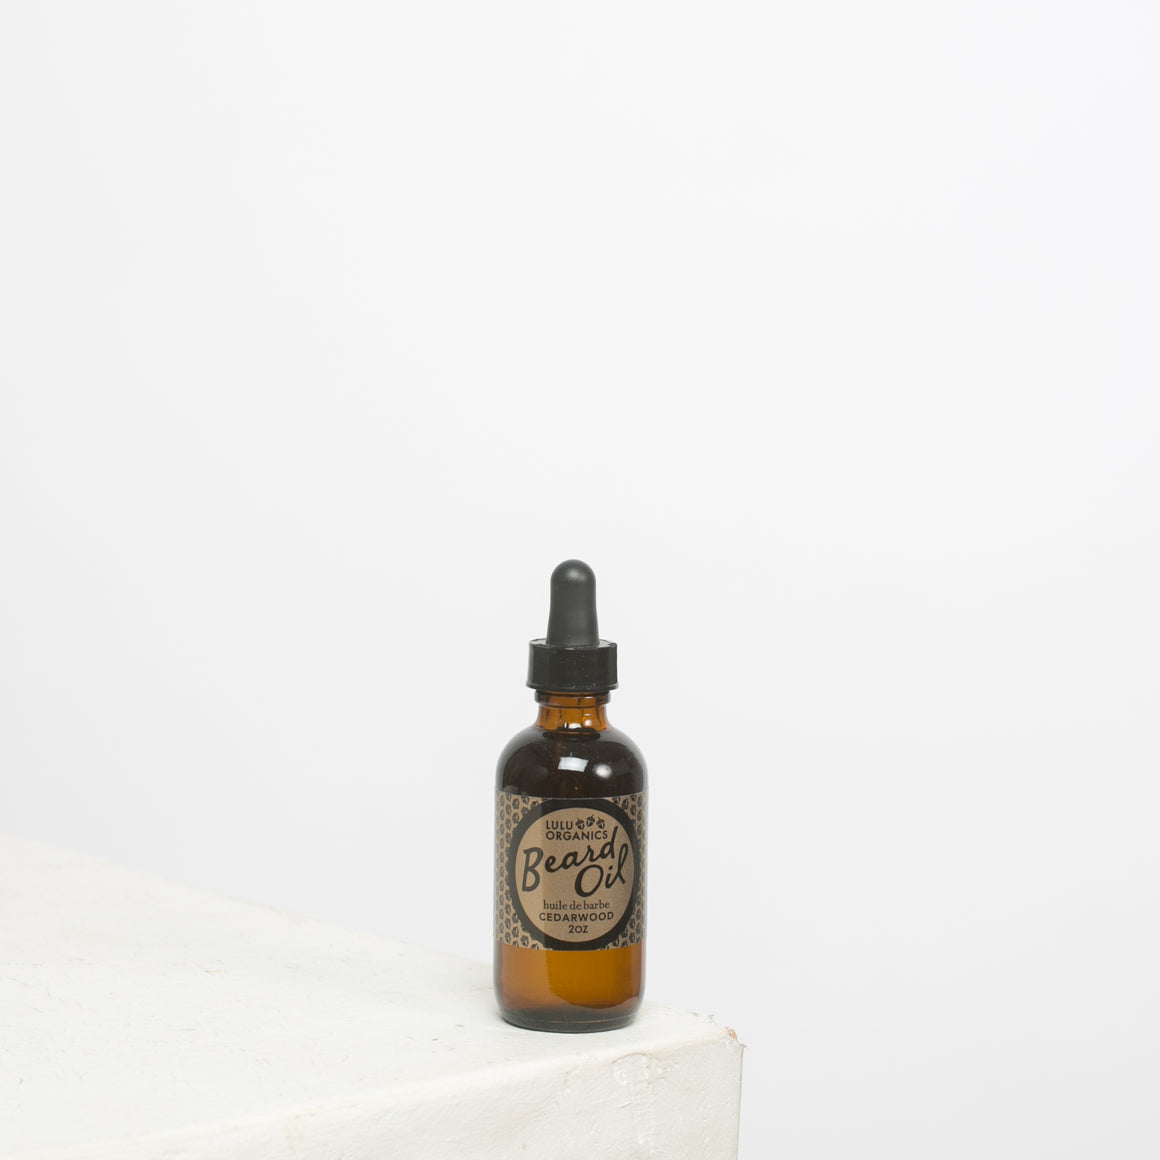 Cedarwood/Cade Berry Beard Oil